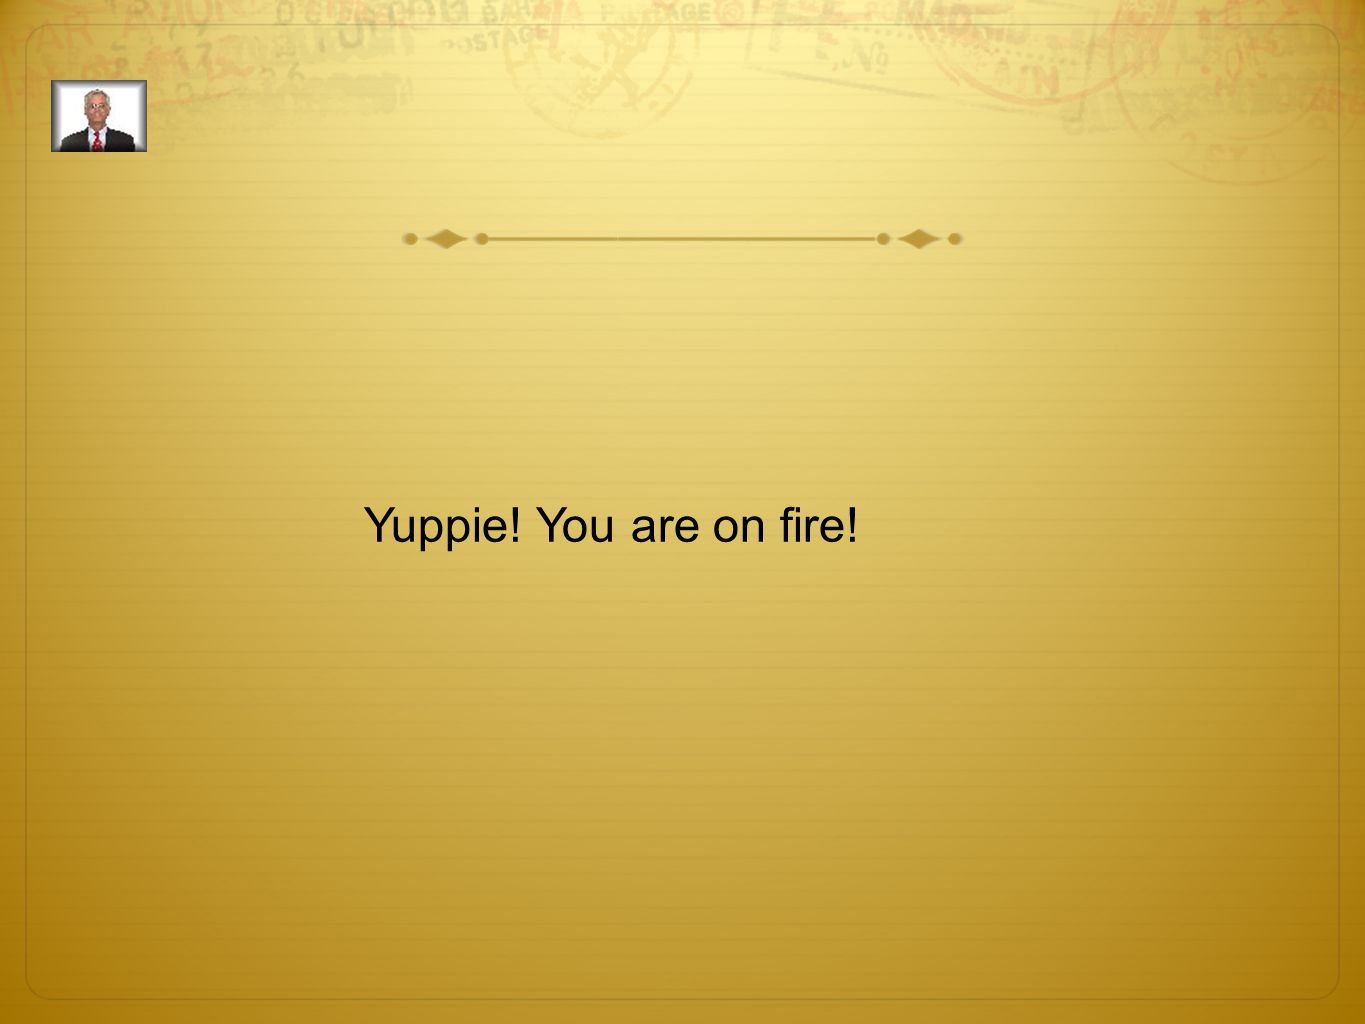 Yuppie! You are on fire!